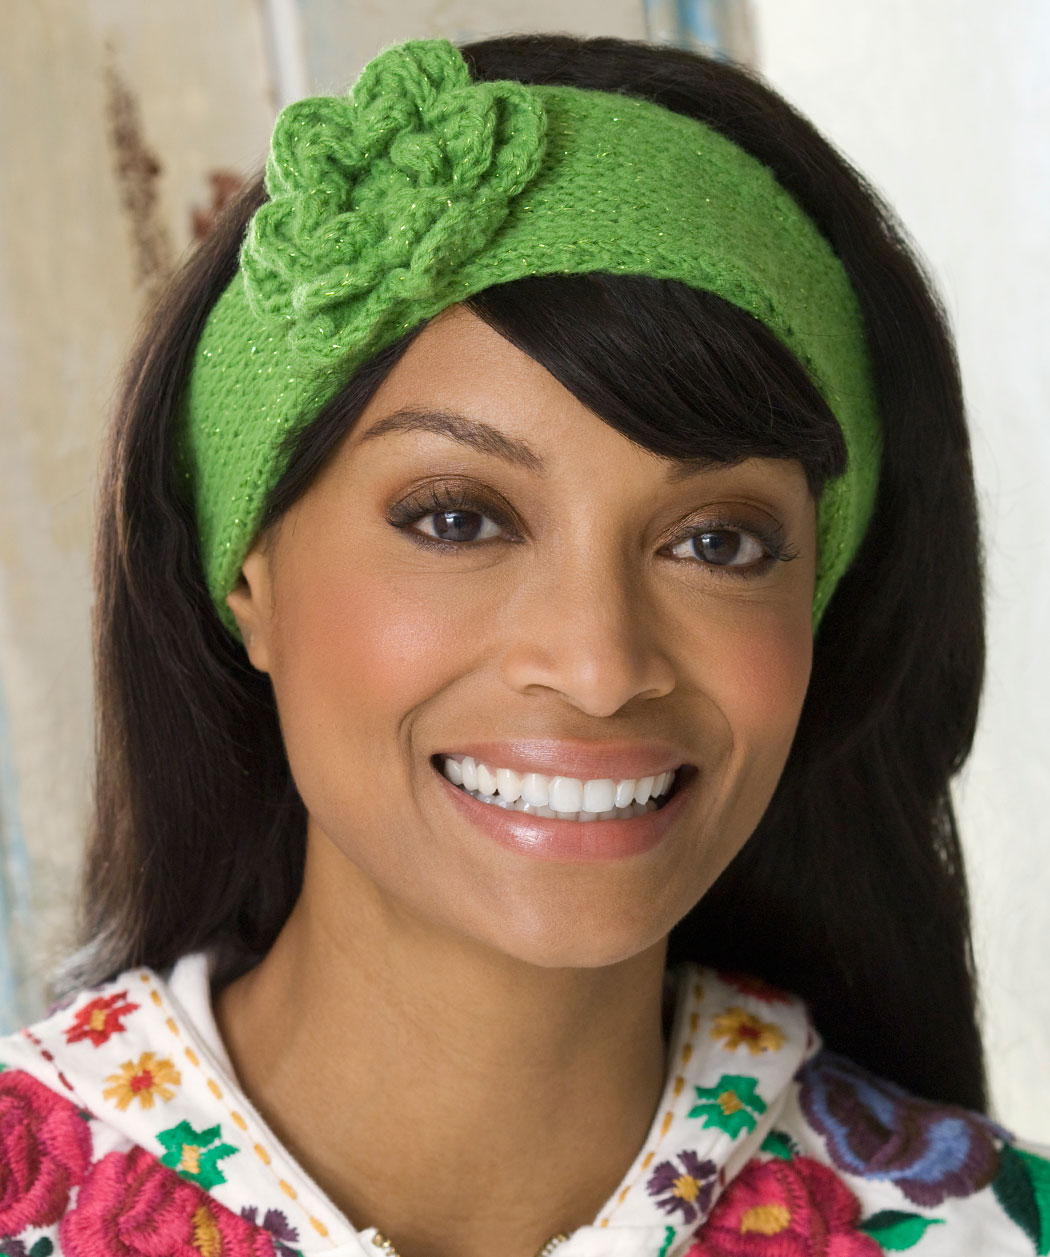 Knit Headband Pattern With Crochet Flower : Knitted Headband with Flower Patterns A Knitting Blog